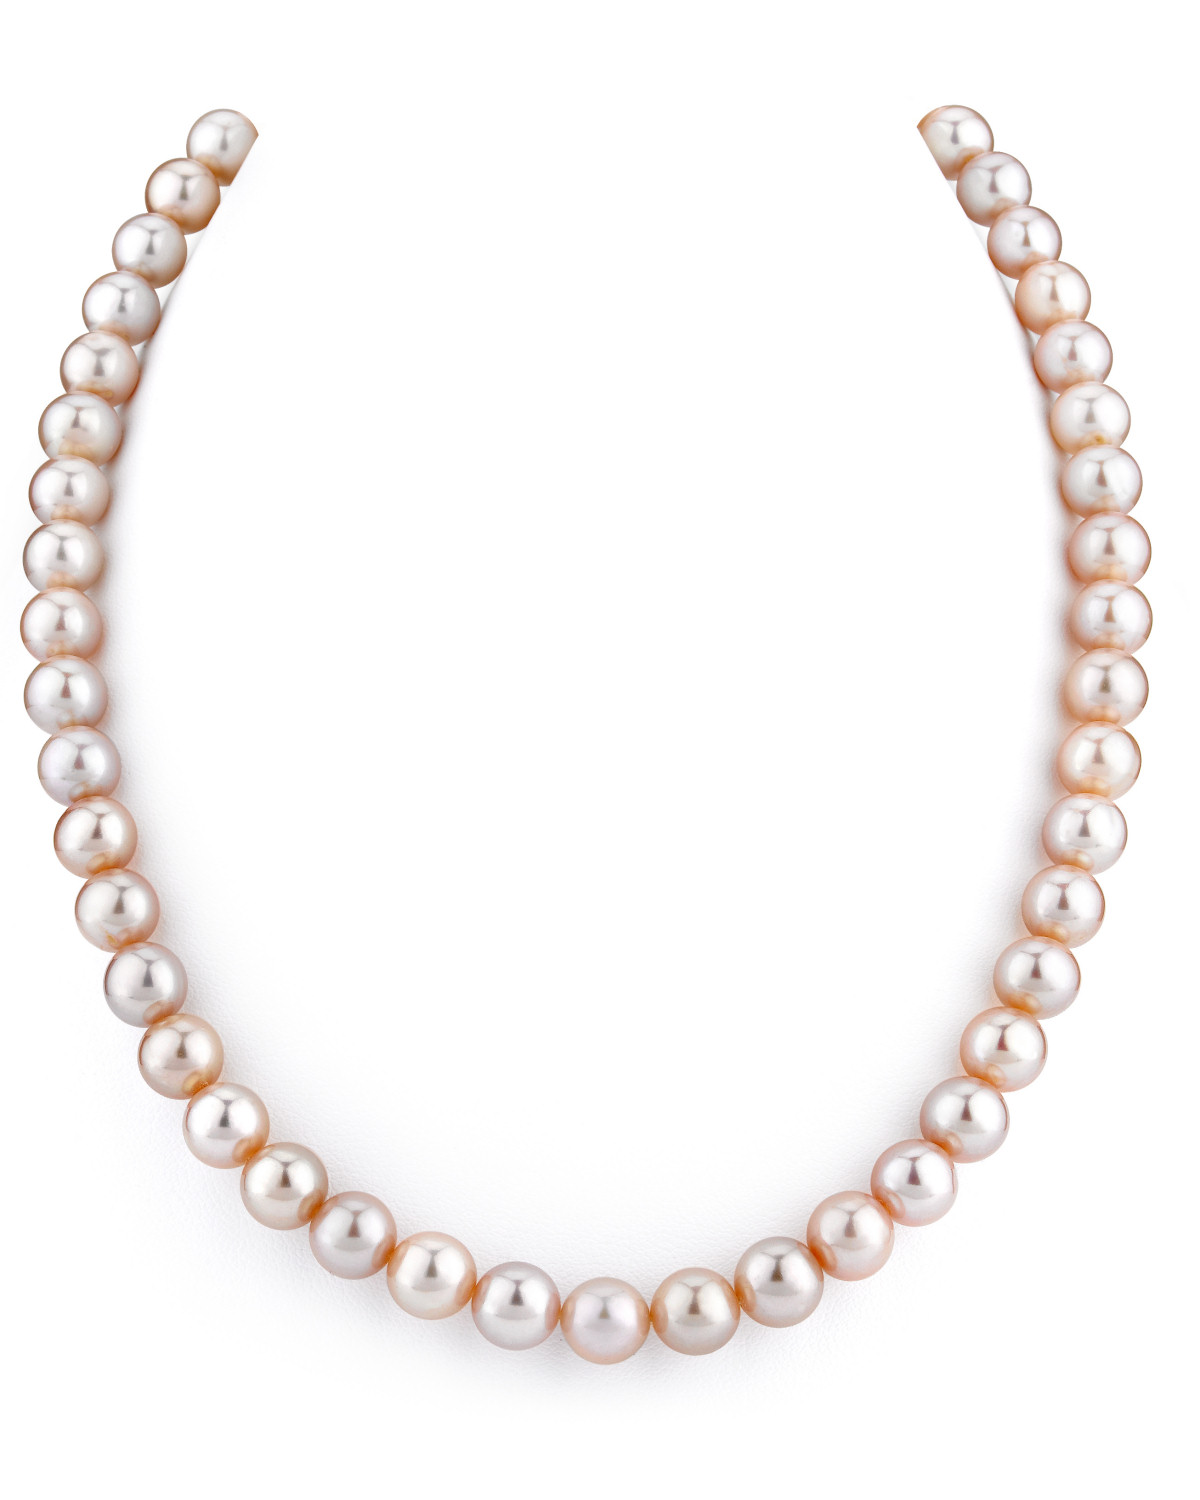 e8592ed63 8-9mm Pink Freshwater Pearl Necklace - AAAA Quality